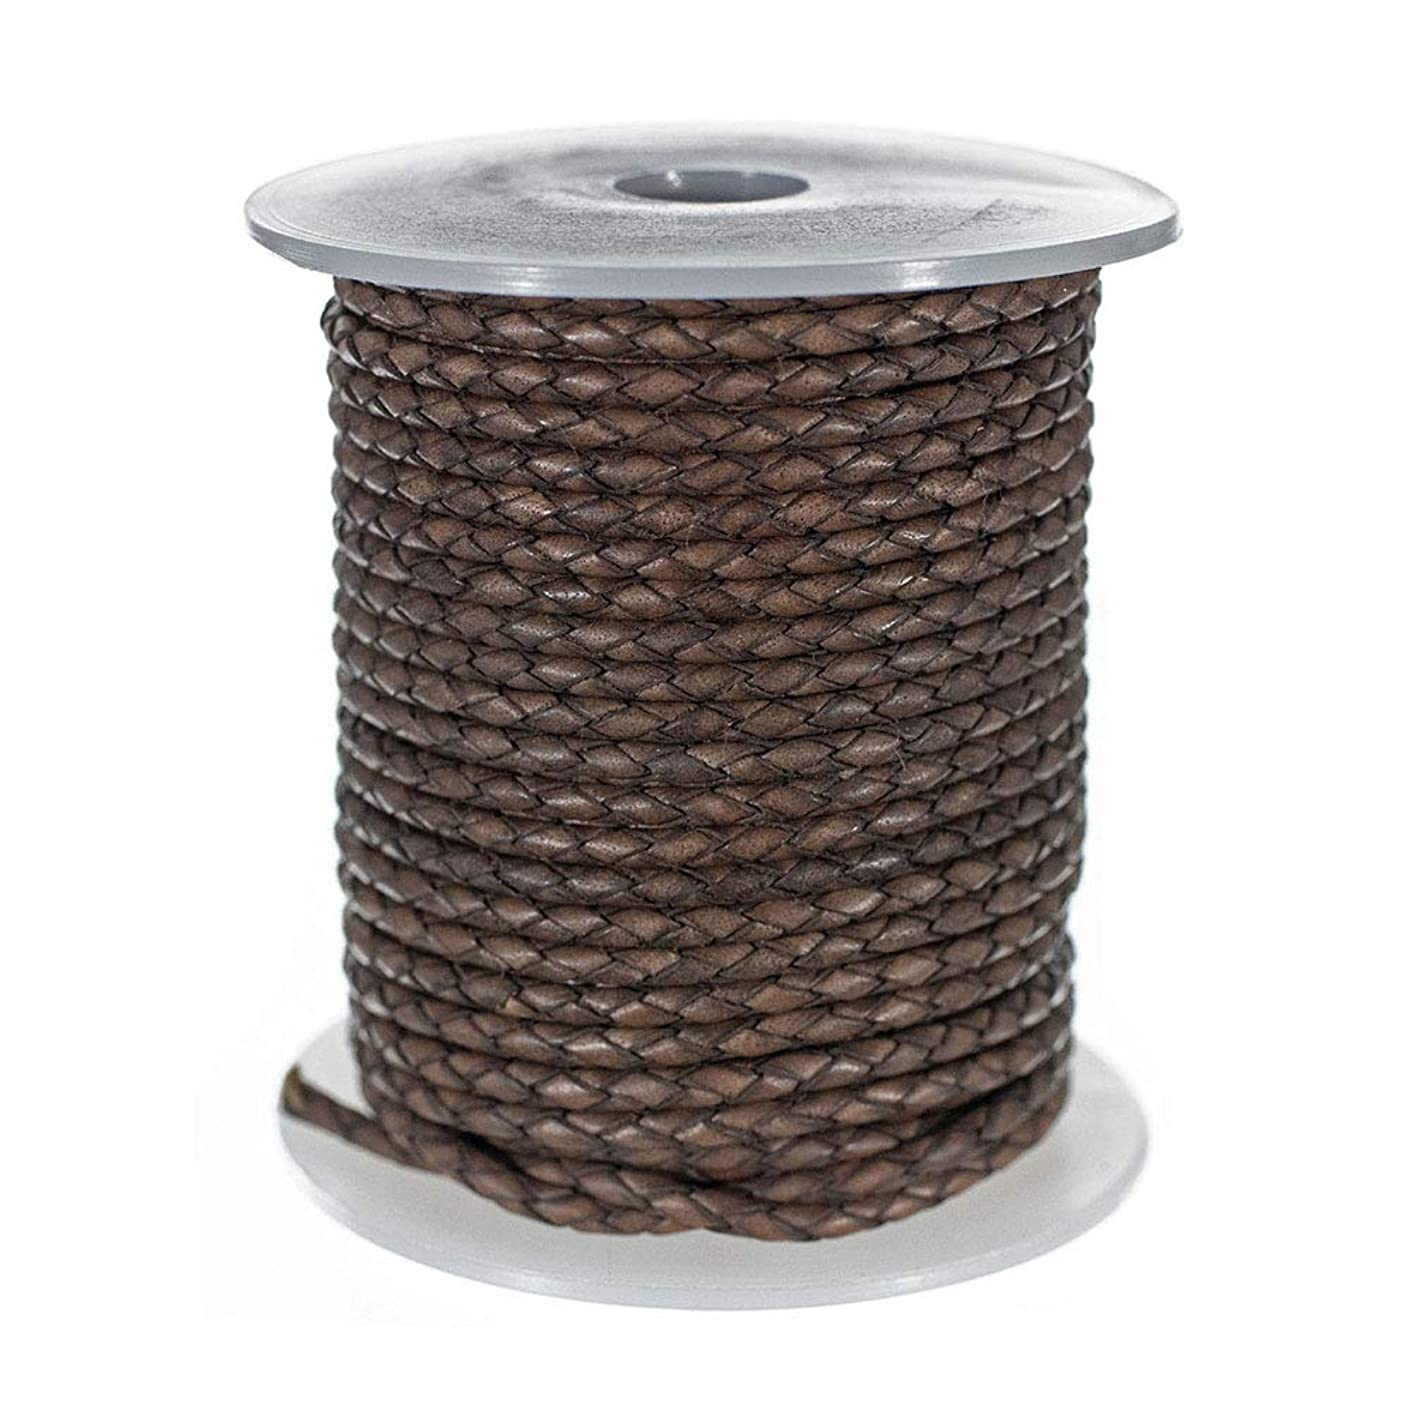 West Coast Paracord 10 Yard 3 mm Round Braided Leather Cord – Folded Bolo PU Braid – Use for Necklace, Bracelets, Jewelry, Bolo Tie, and More – Brown